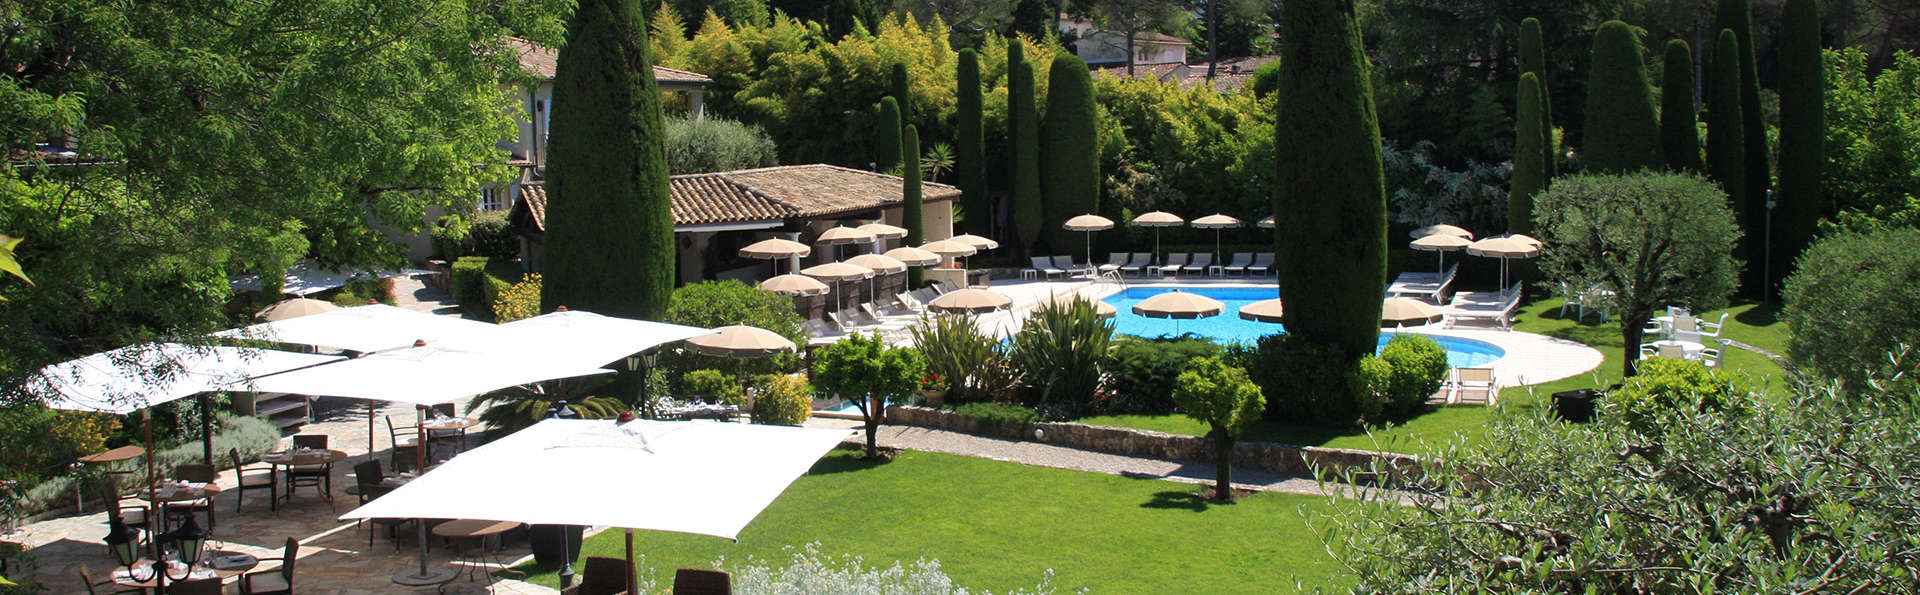 Hôtel de Mougins  - EDIT_gardenpool.jpg